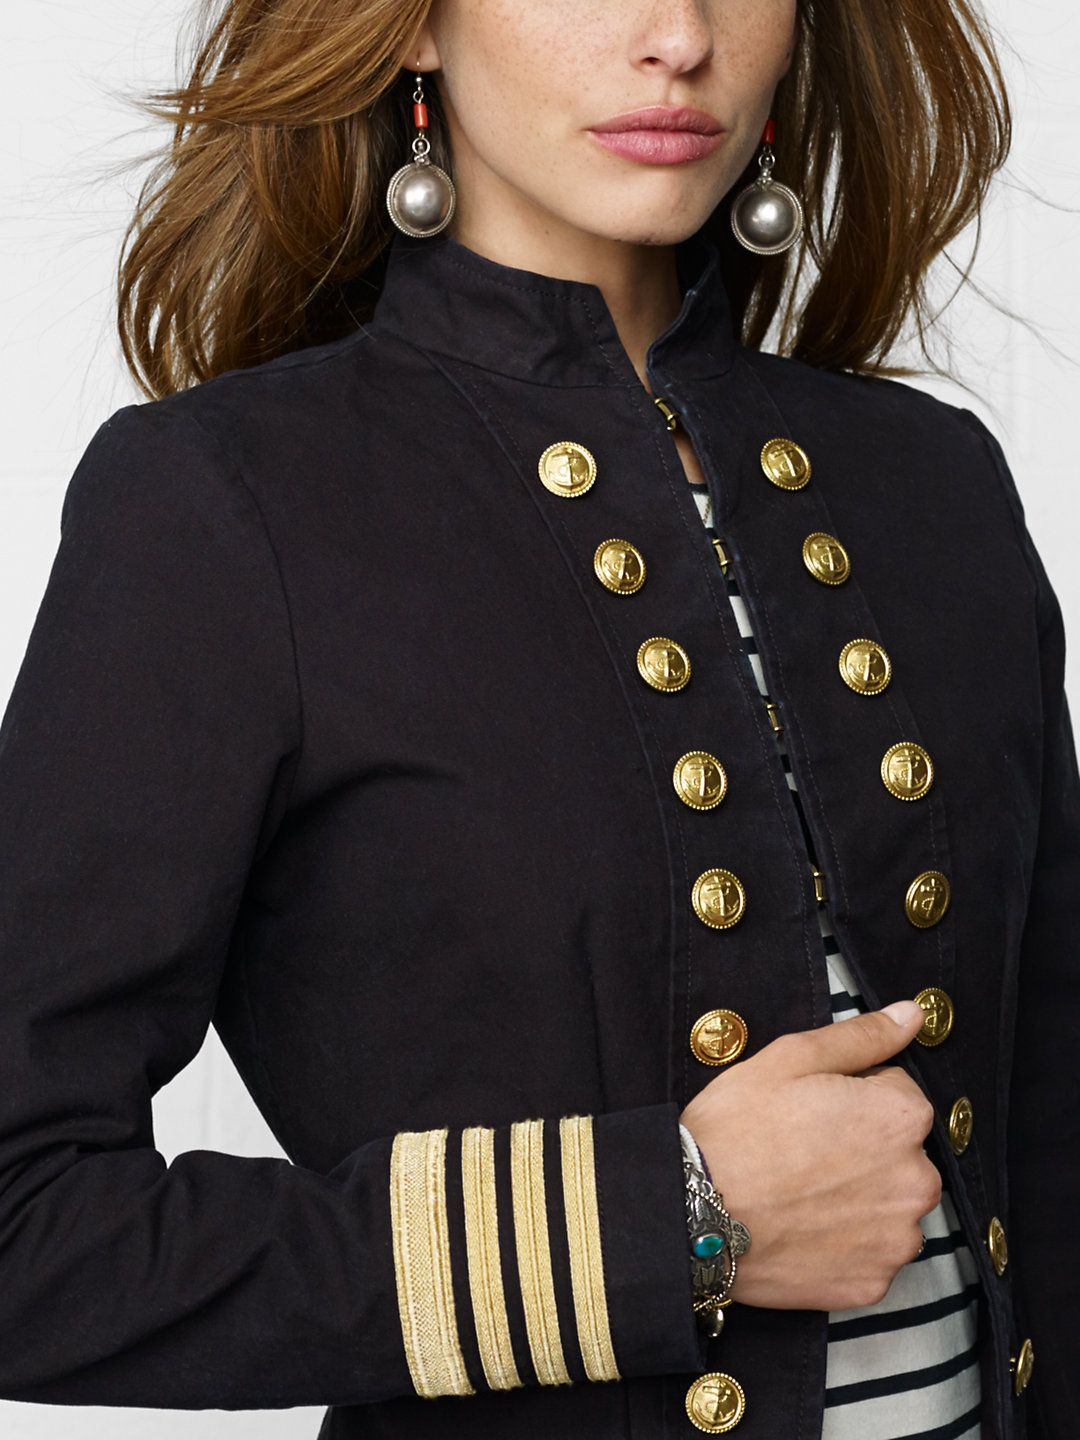 Captain's Coat - Outerwear Jackets & Outerwear - RalphLauren.com ...